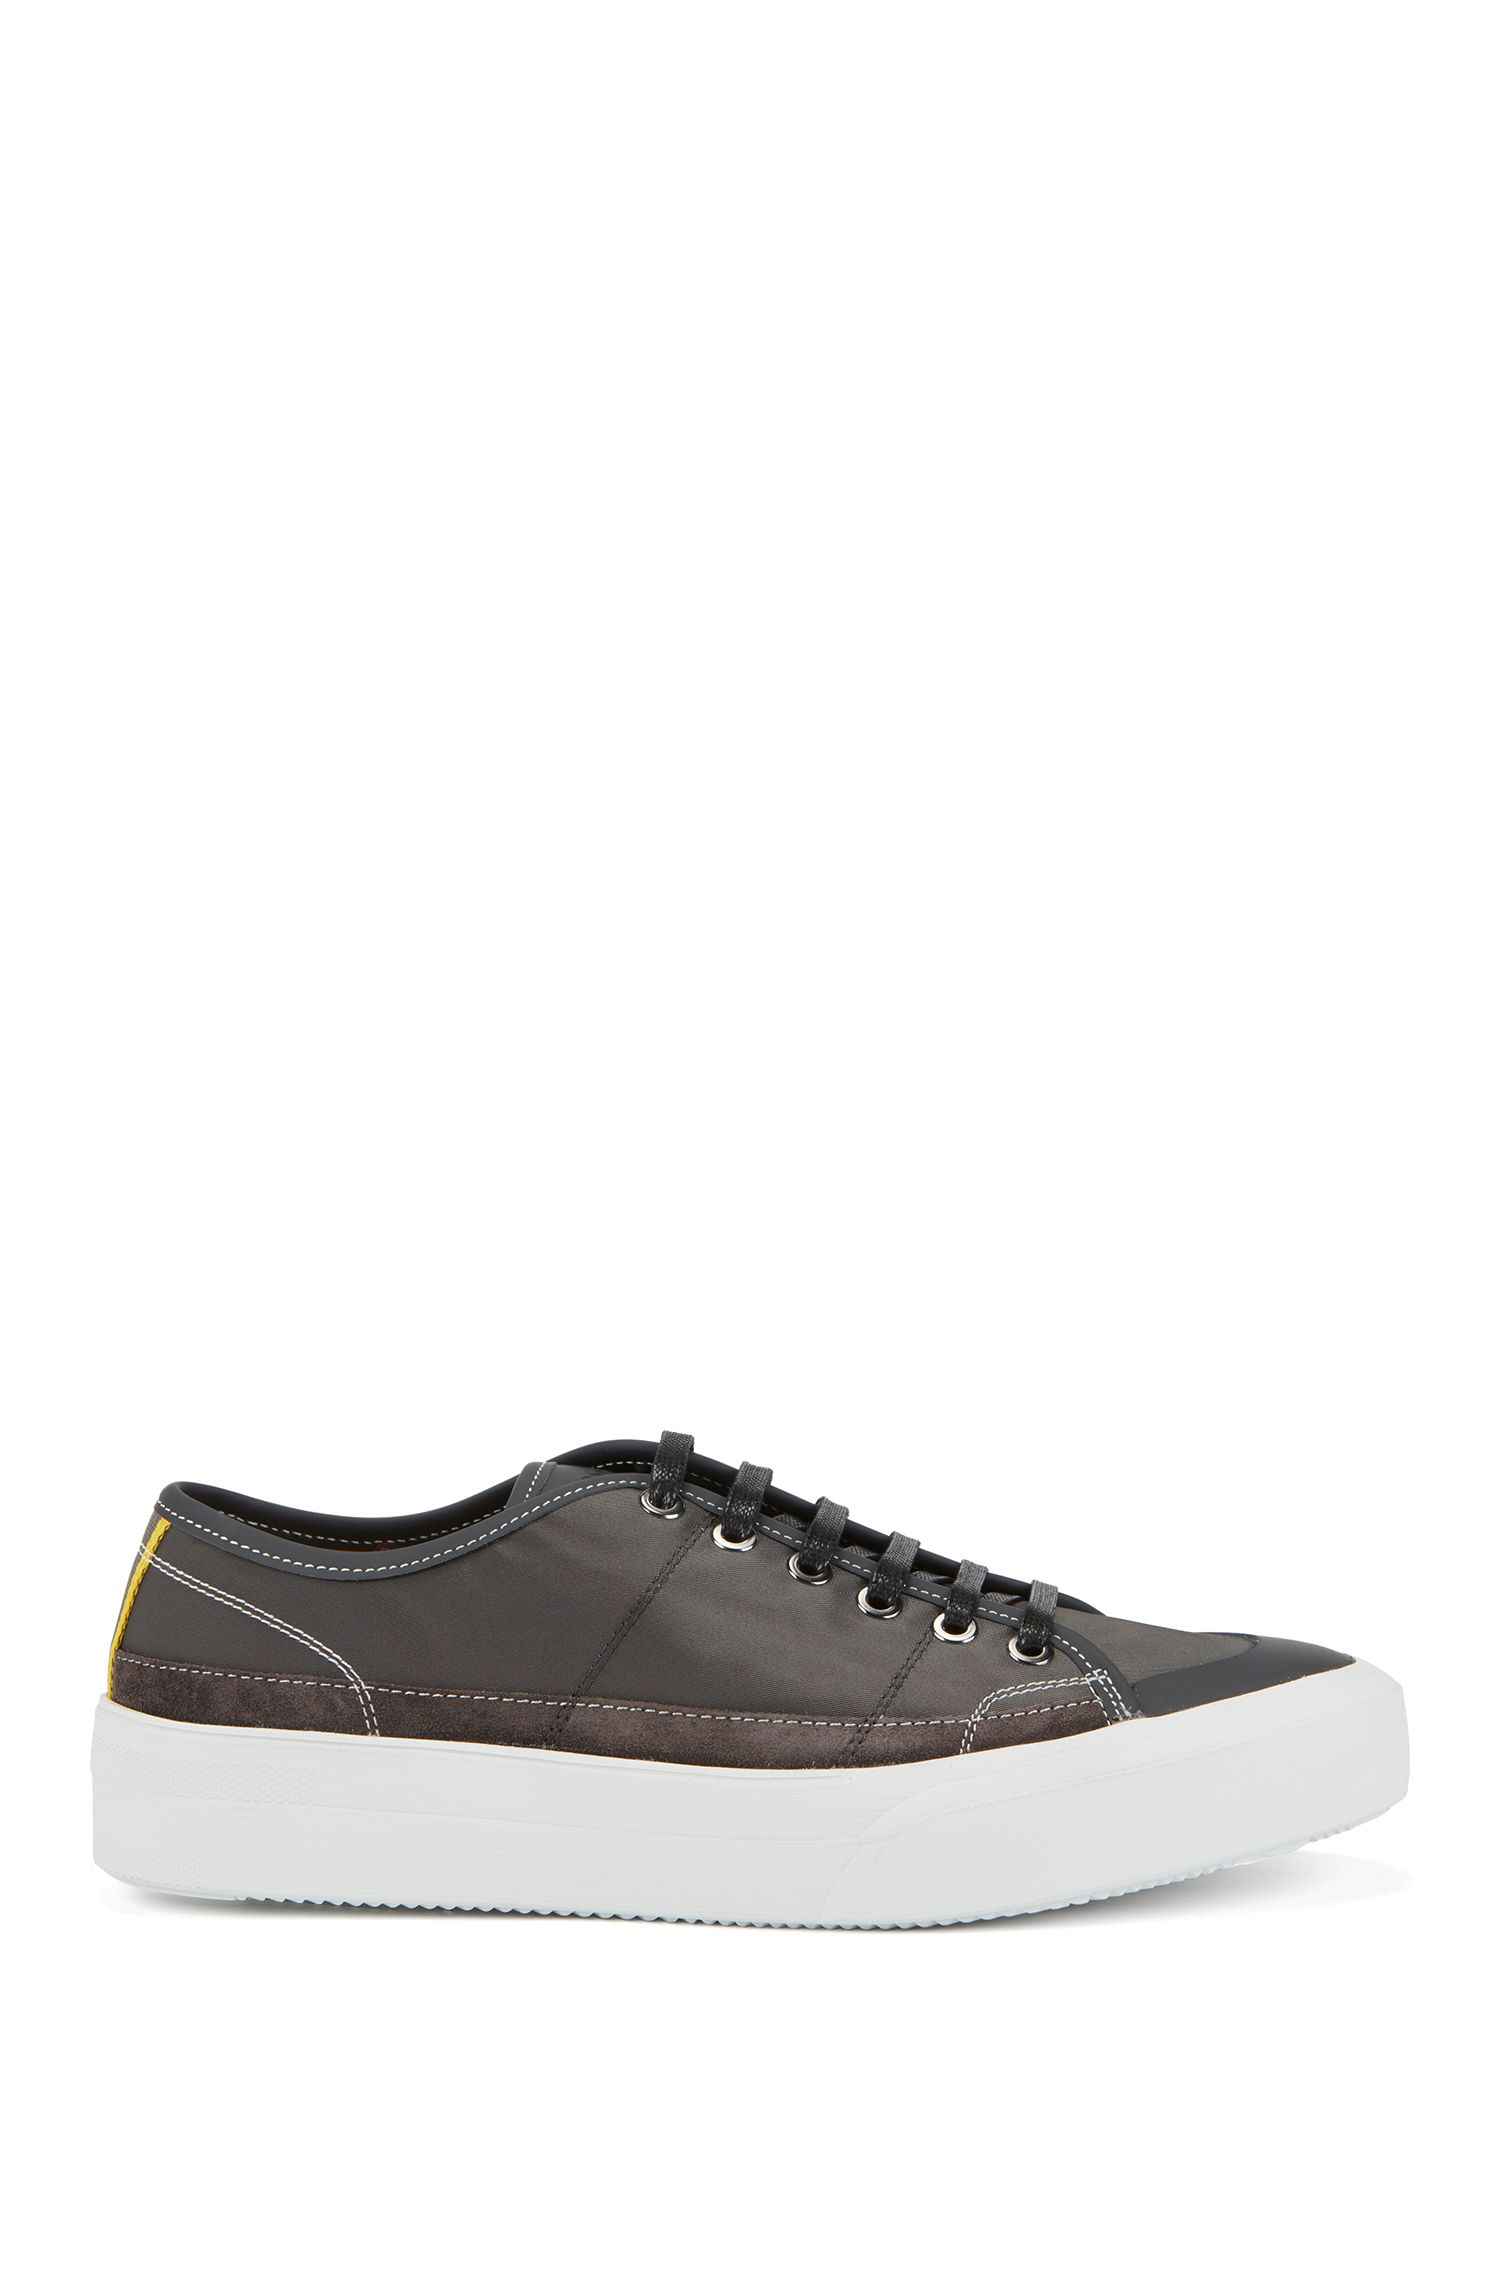 Fashion Show Capsule low-top sneakers with rubber sole, Dark Grey